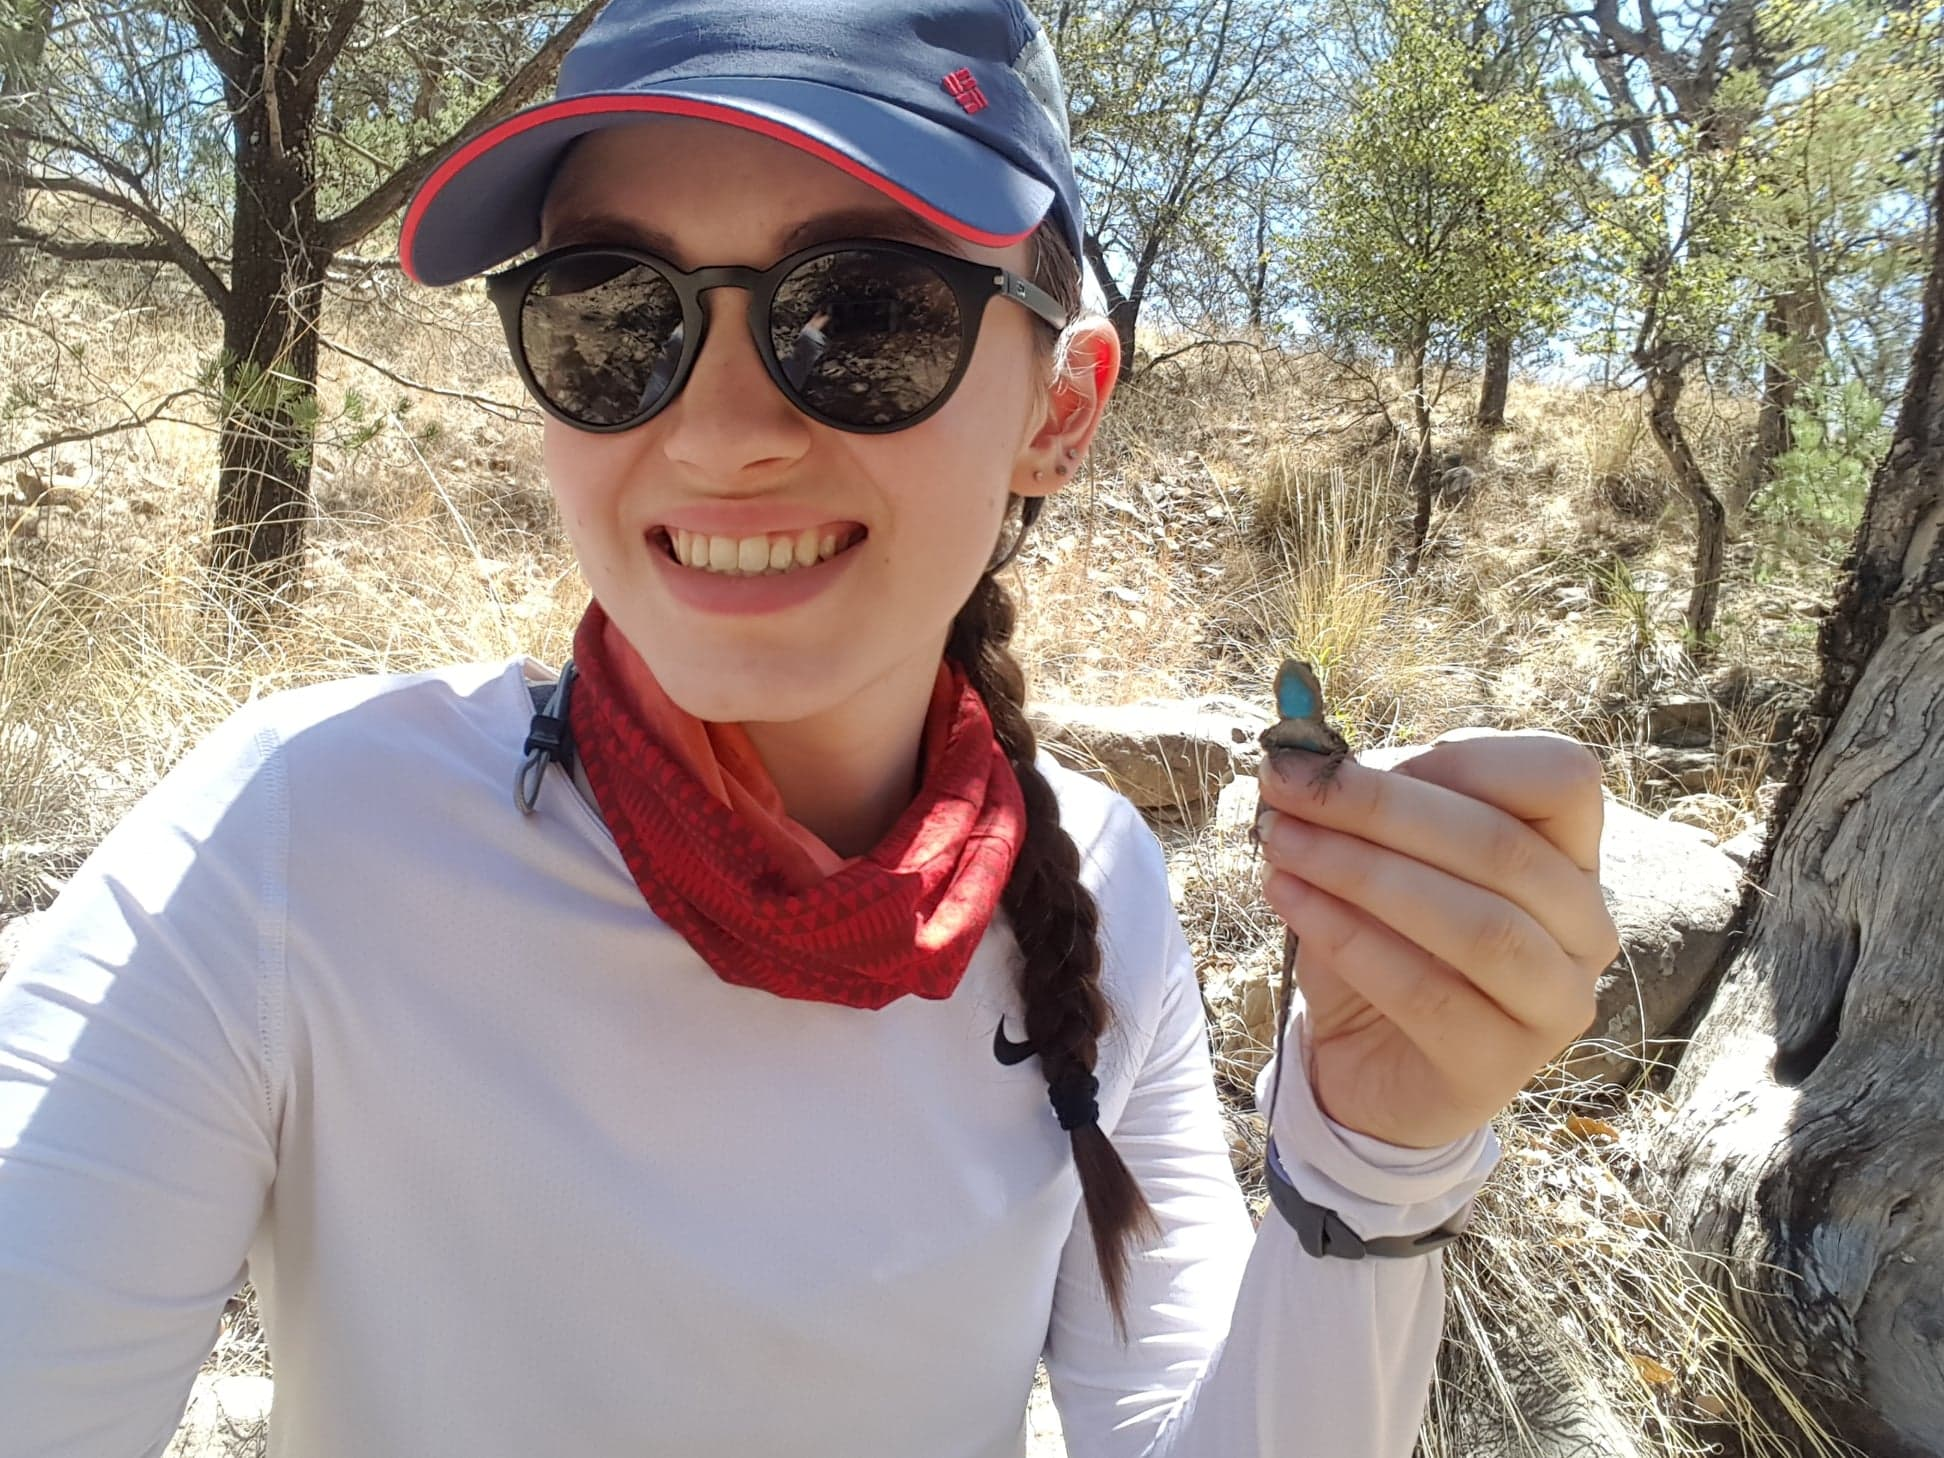 Herpetology research in the Southwestern United-States